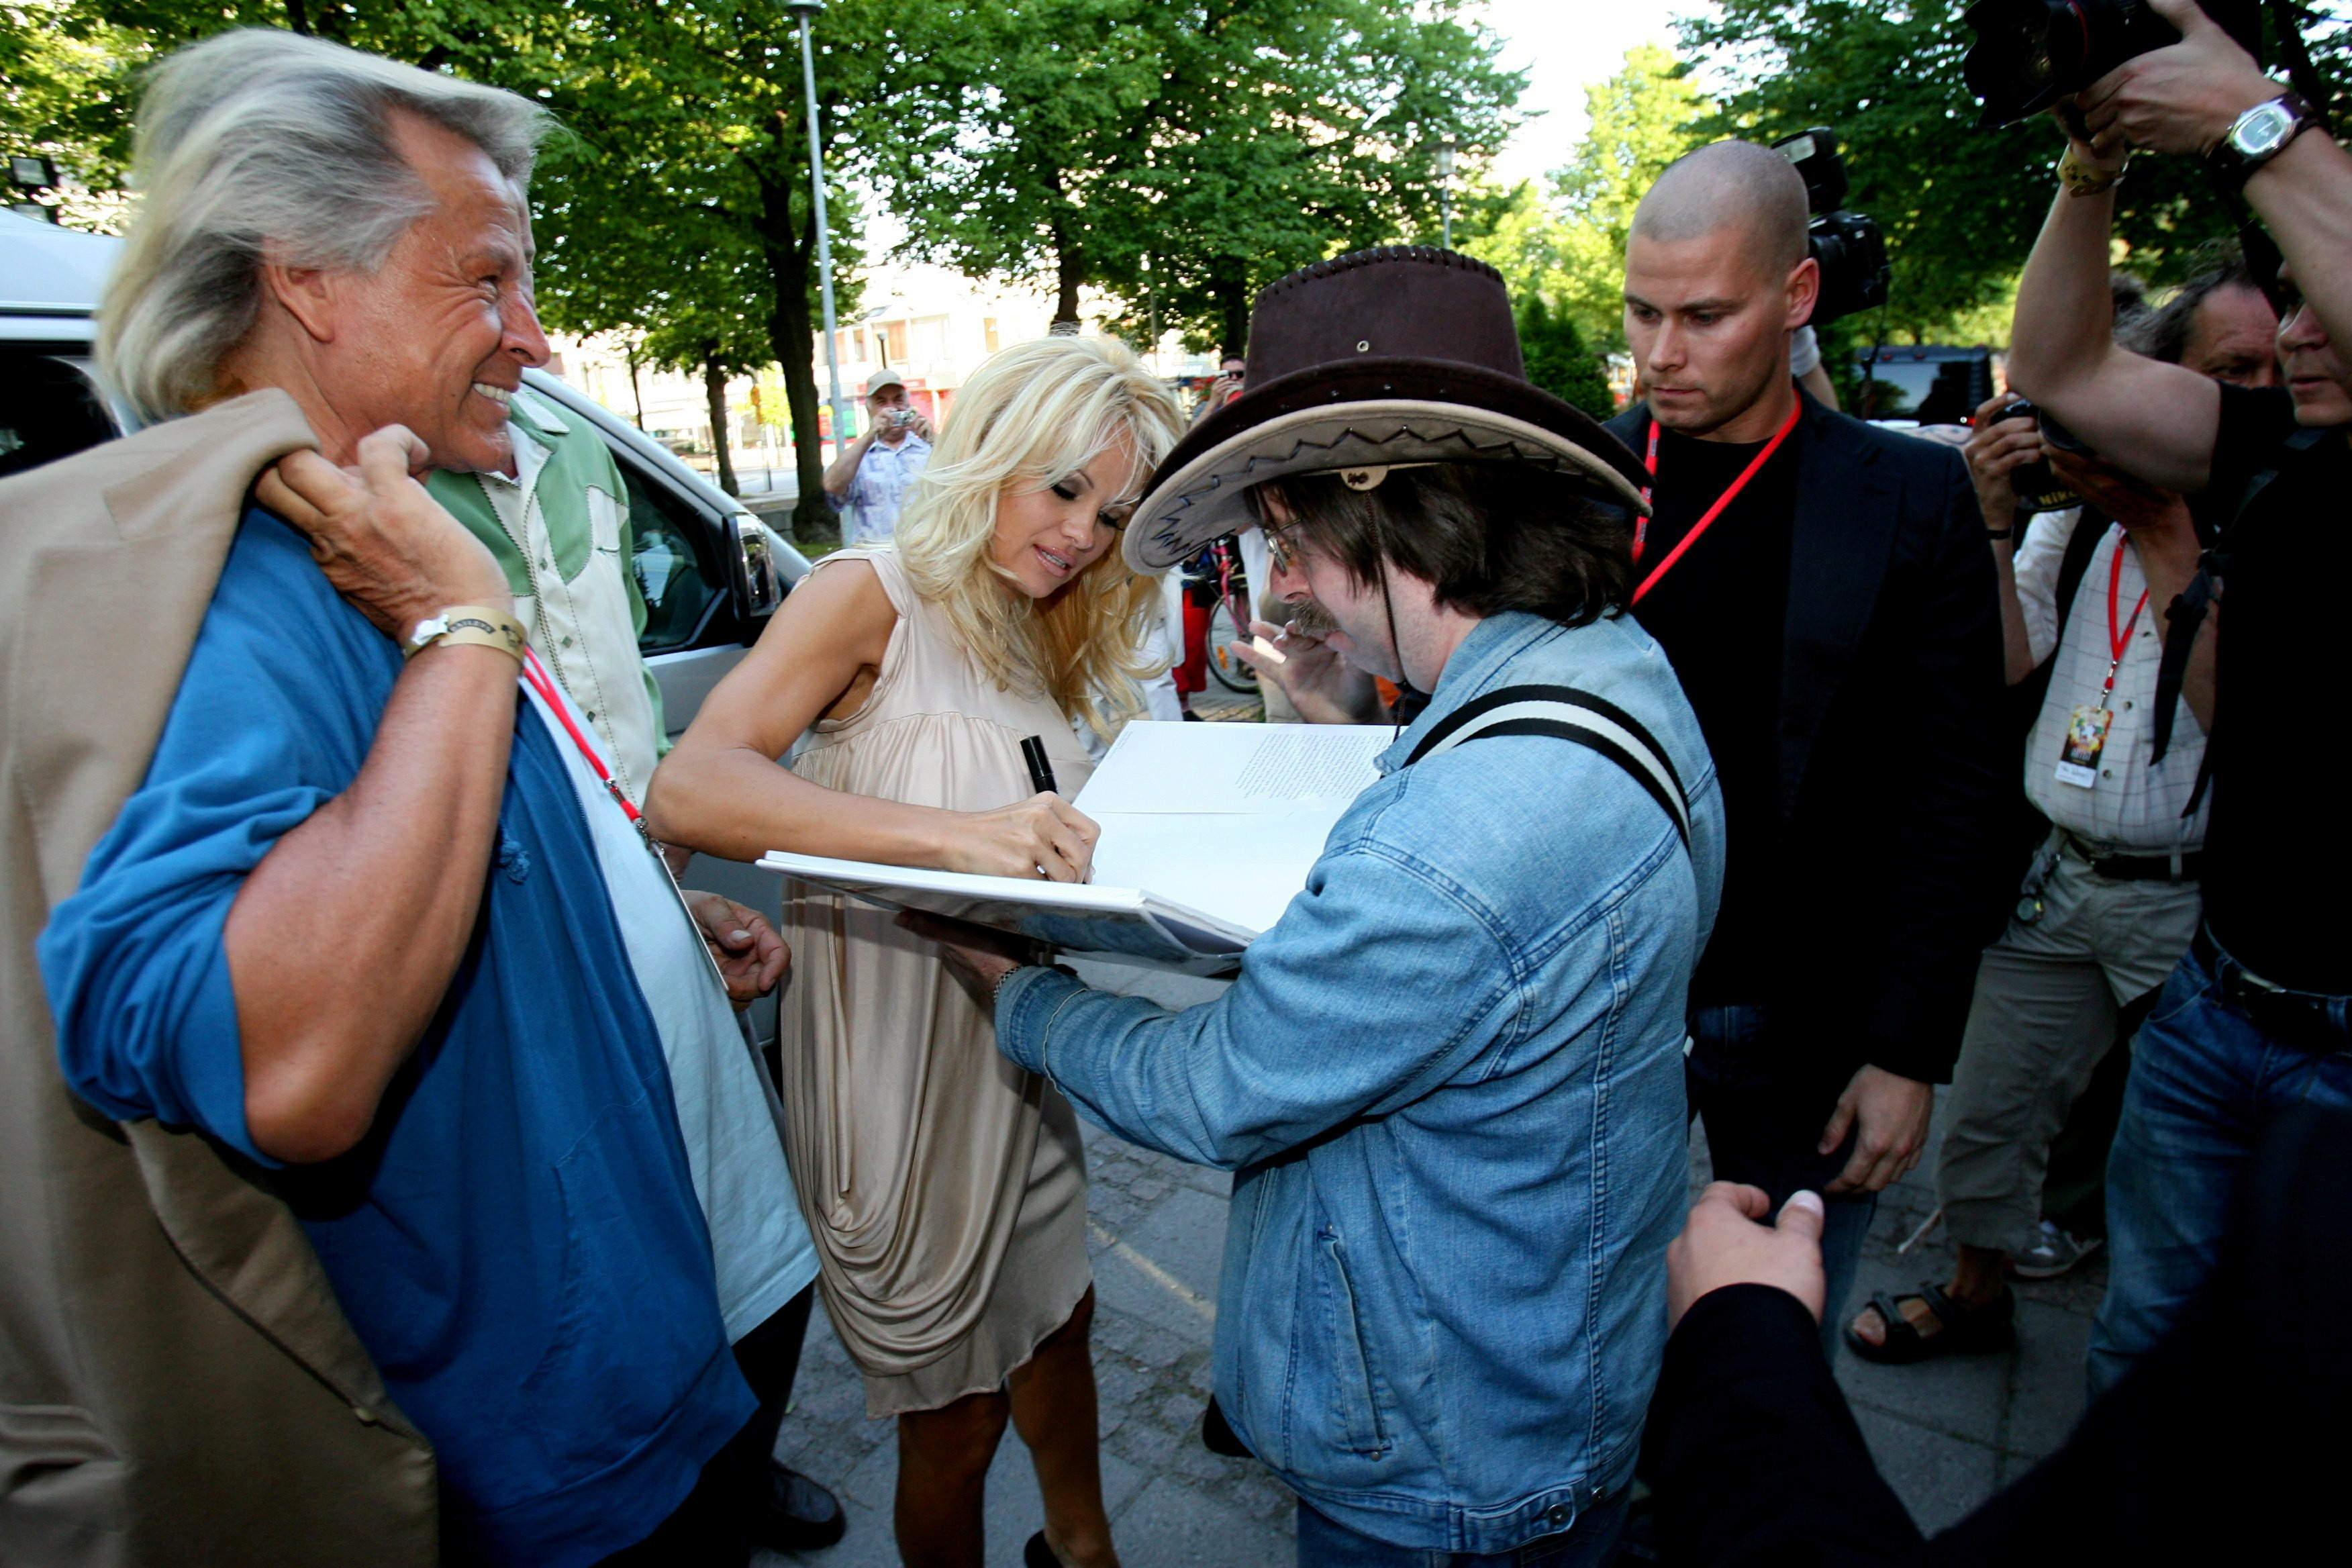 Actress Pamela Anderson signs an autograph for fan Juha Nurmi while Finnish-born fashion designer Peter Nygard looks on at the Raumanmeri midsummer festival in Rauma, Finland, June 22, 2007. Picture taken June 22, 2007.  Lehtikuva/Roni Rekomaa via REUTERS      ATTENTION EDITORS - THIS IMAGE WAS PROVIDED BY A THIRD PARTY. NO THIRD PARTY SALES. NOT FOR USE BY REUTERS THIRD PARTY DISTRIBUTORS. FINLAND OUT. NO COMMERCIAL OR EDITORIAL SALES IN FINLAND.